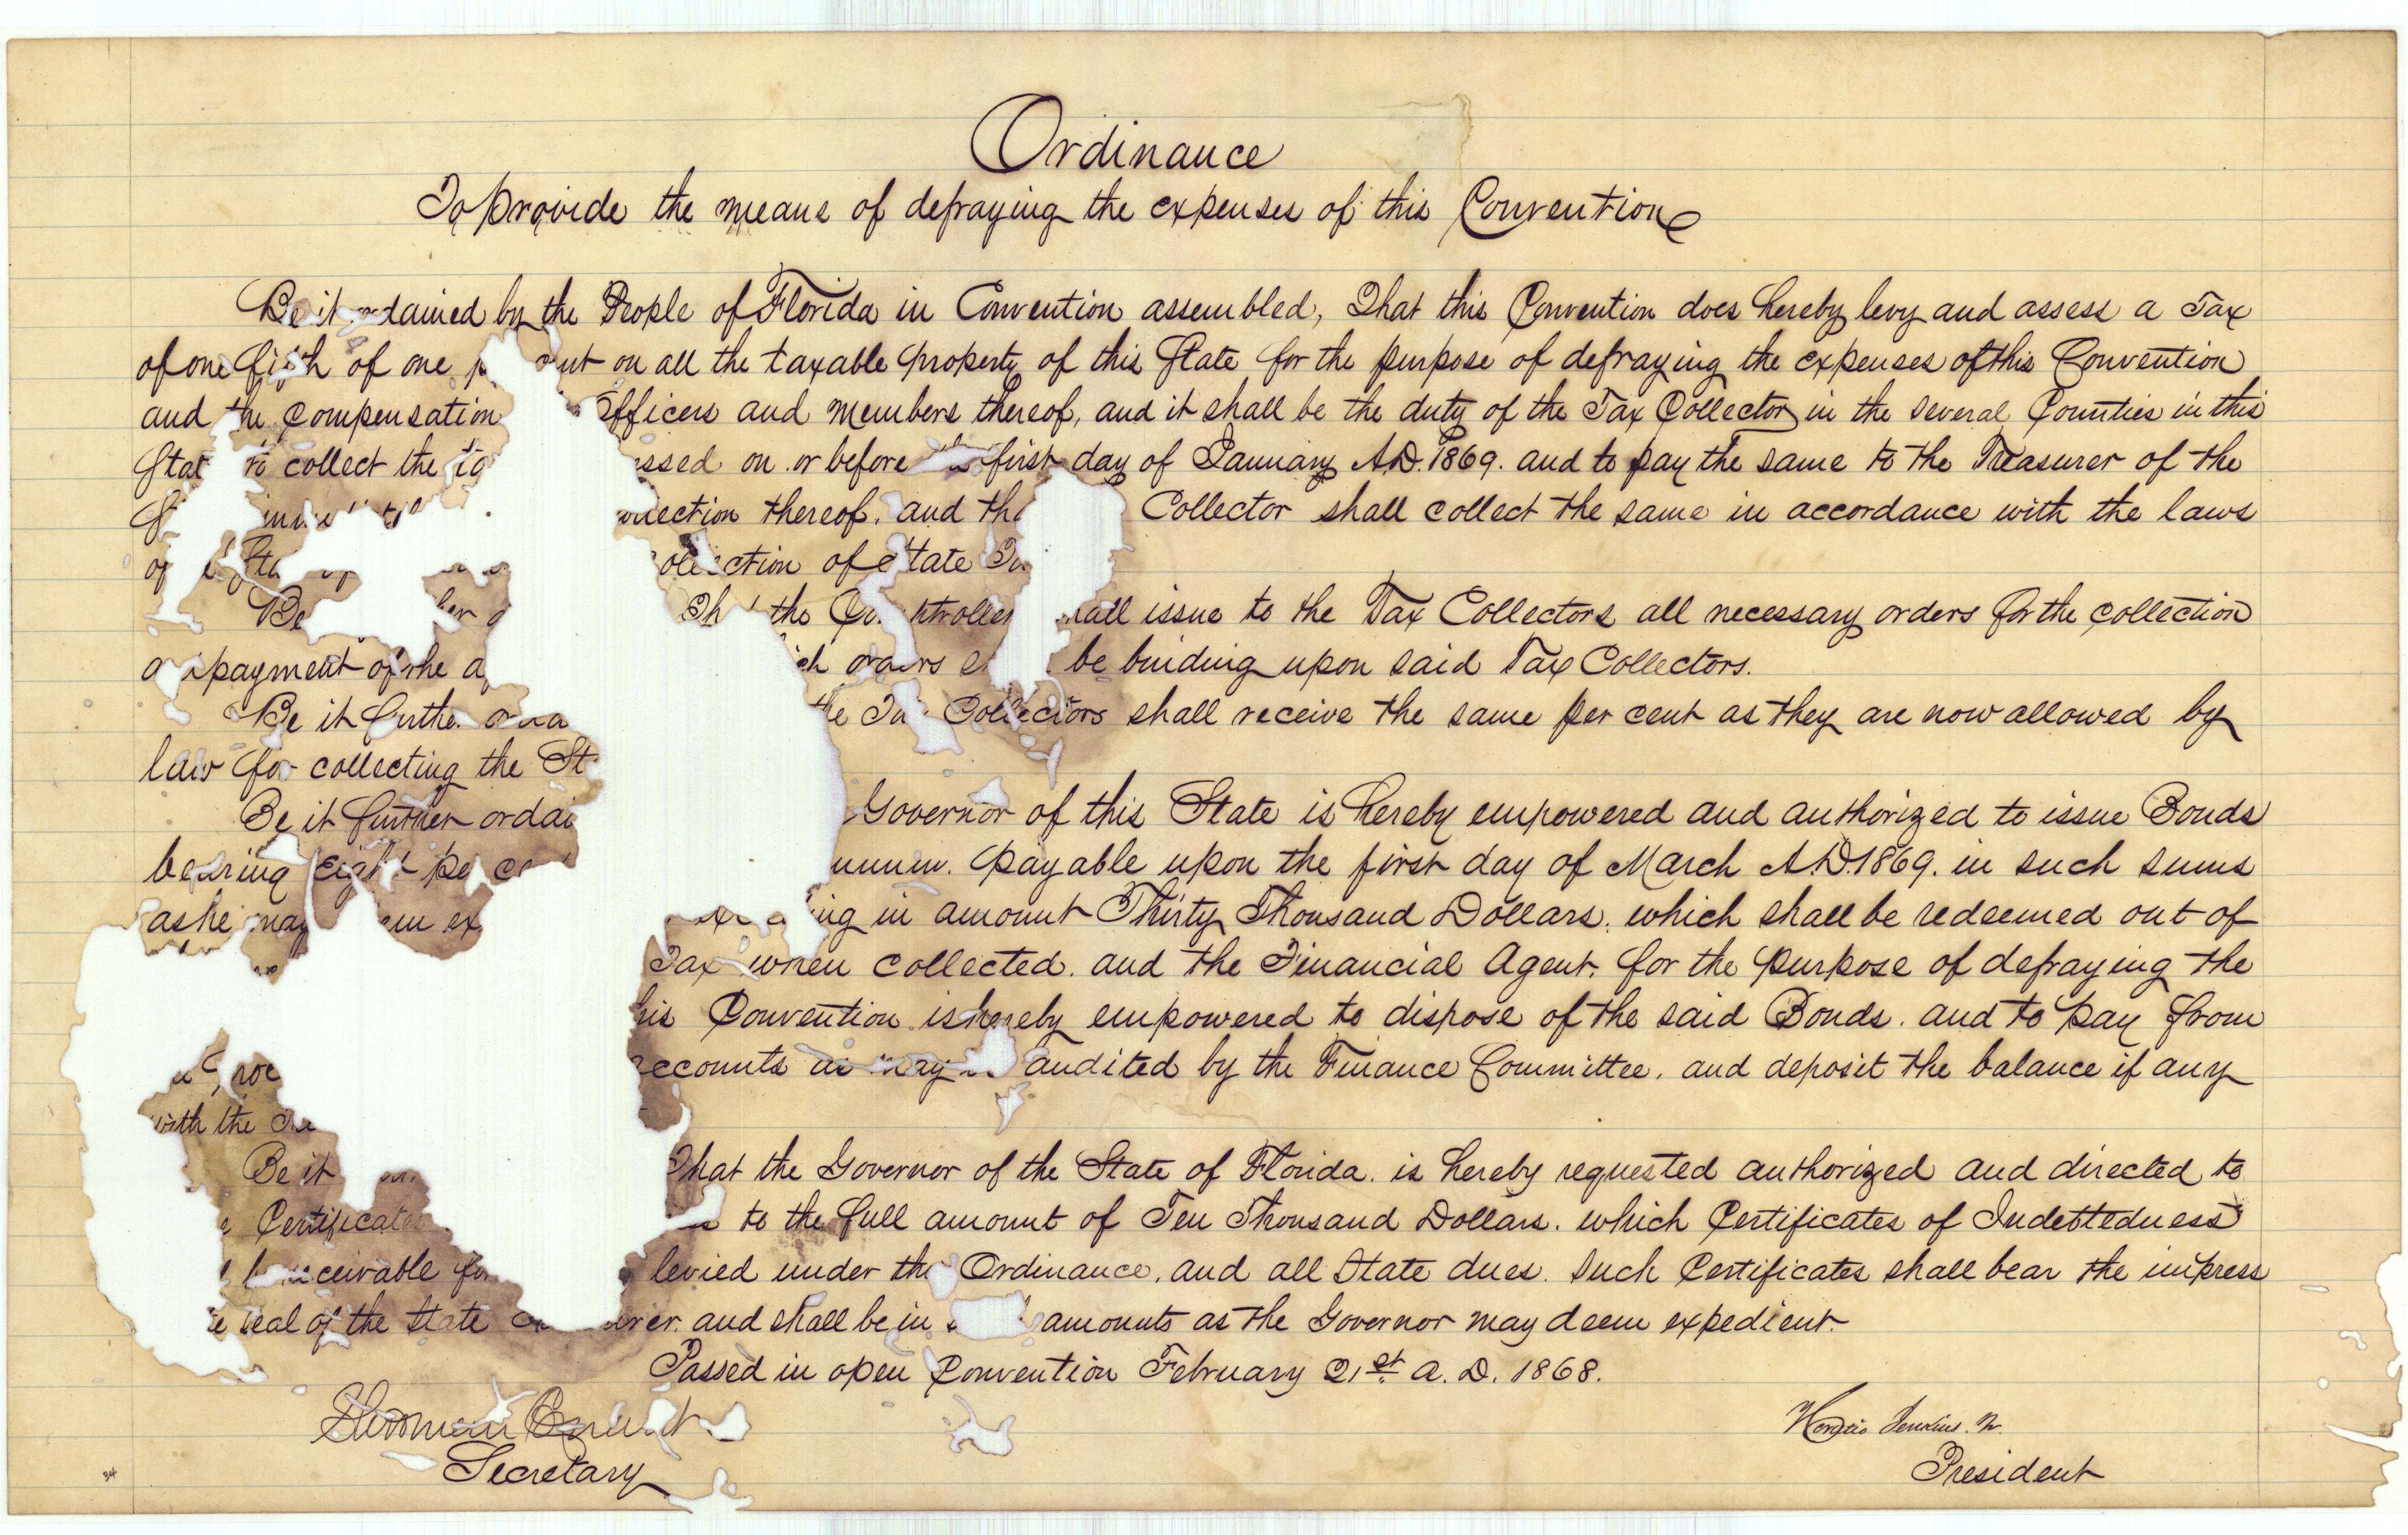 florida constitution revision commission application